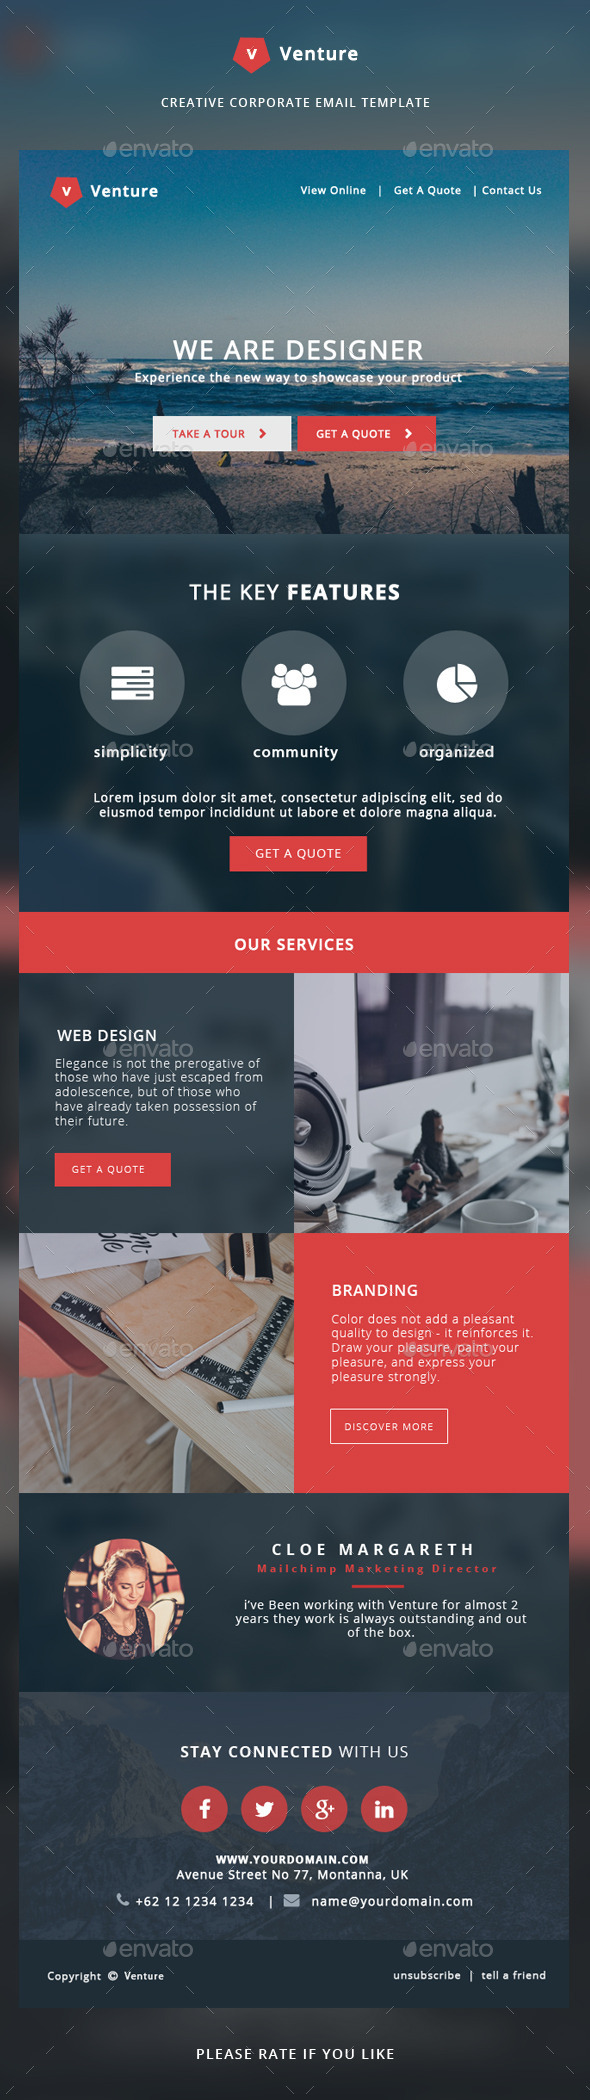 Corporate Email Template - Venture - E-newsletters Web Elements